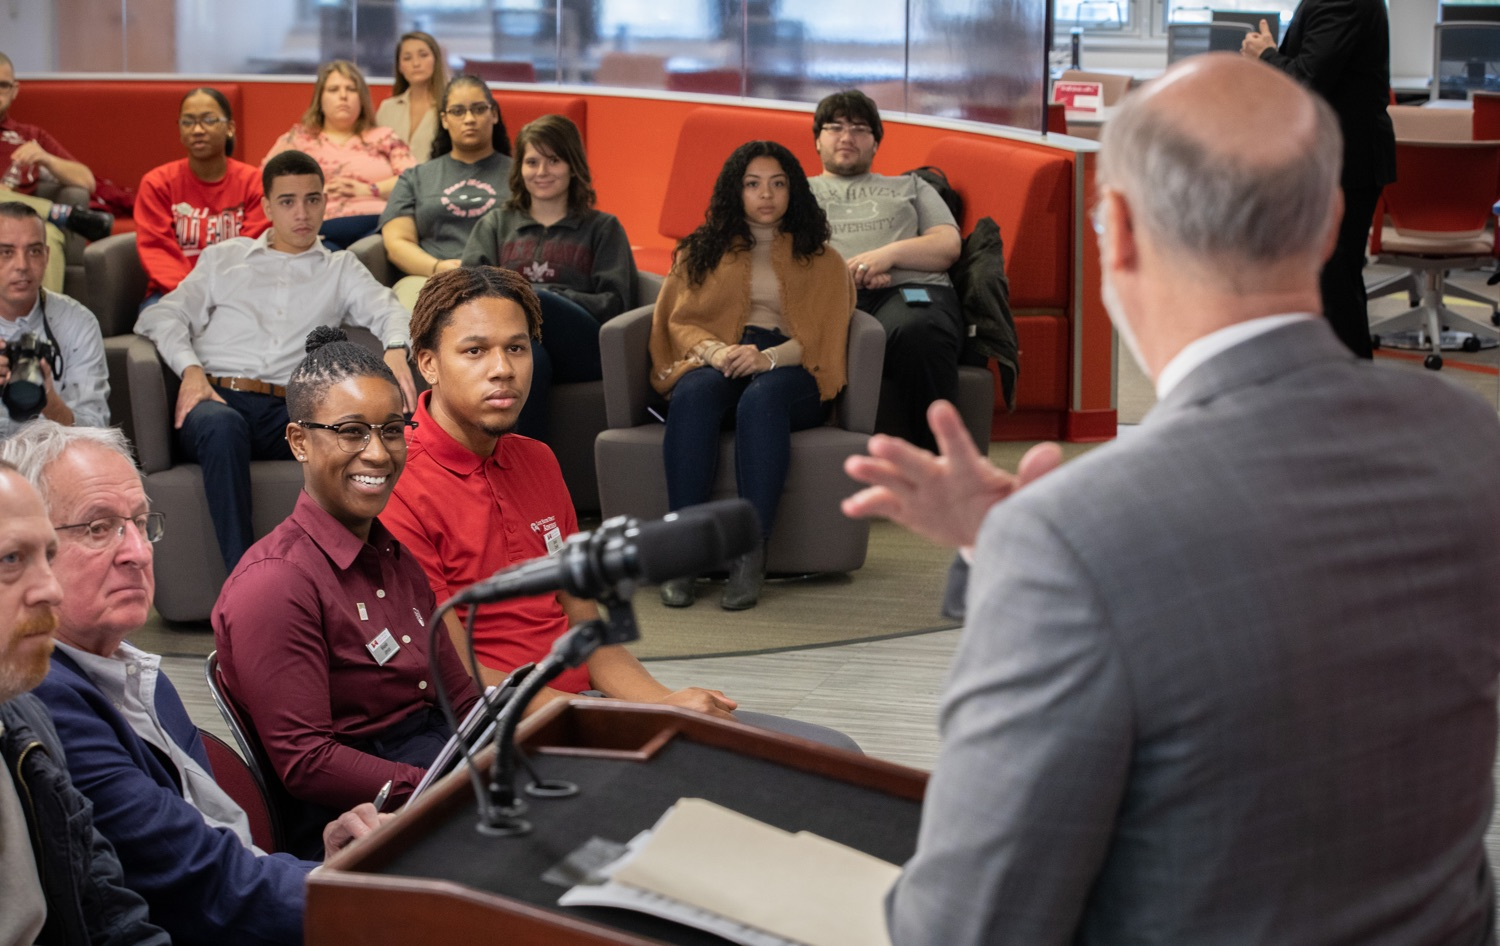 """<a href=""""https://filesource.wostreaming.net/commonwealthofpa/photo/17763_gov_highered_dz_007.jpg"""" target=""""_blank"""">⇣Download Photo<br></a>Governor Tom Wolf speaks to Lock Haven University students Mikaylah Johnson and Derrick Cheeks at Lock Haven University.  Governor Tom Wolf visited Lock Haven University today to launch a tour of the 14 state-owned universities and discuss his proposal to help thousands of low- and middle-class students afford their dream of a college education. Lock Haven, PA  February 12, 2020"""